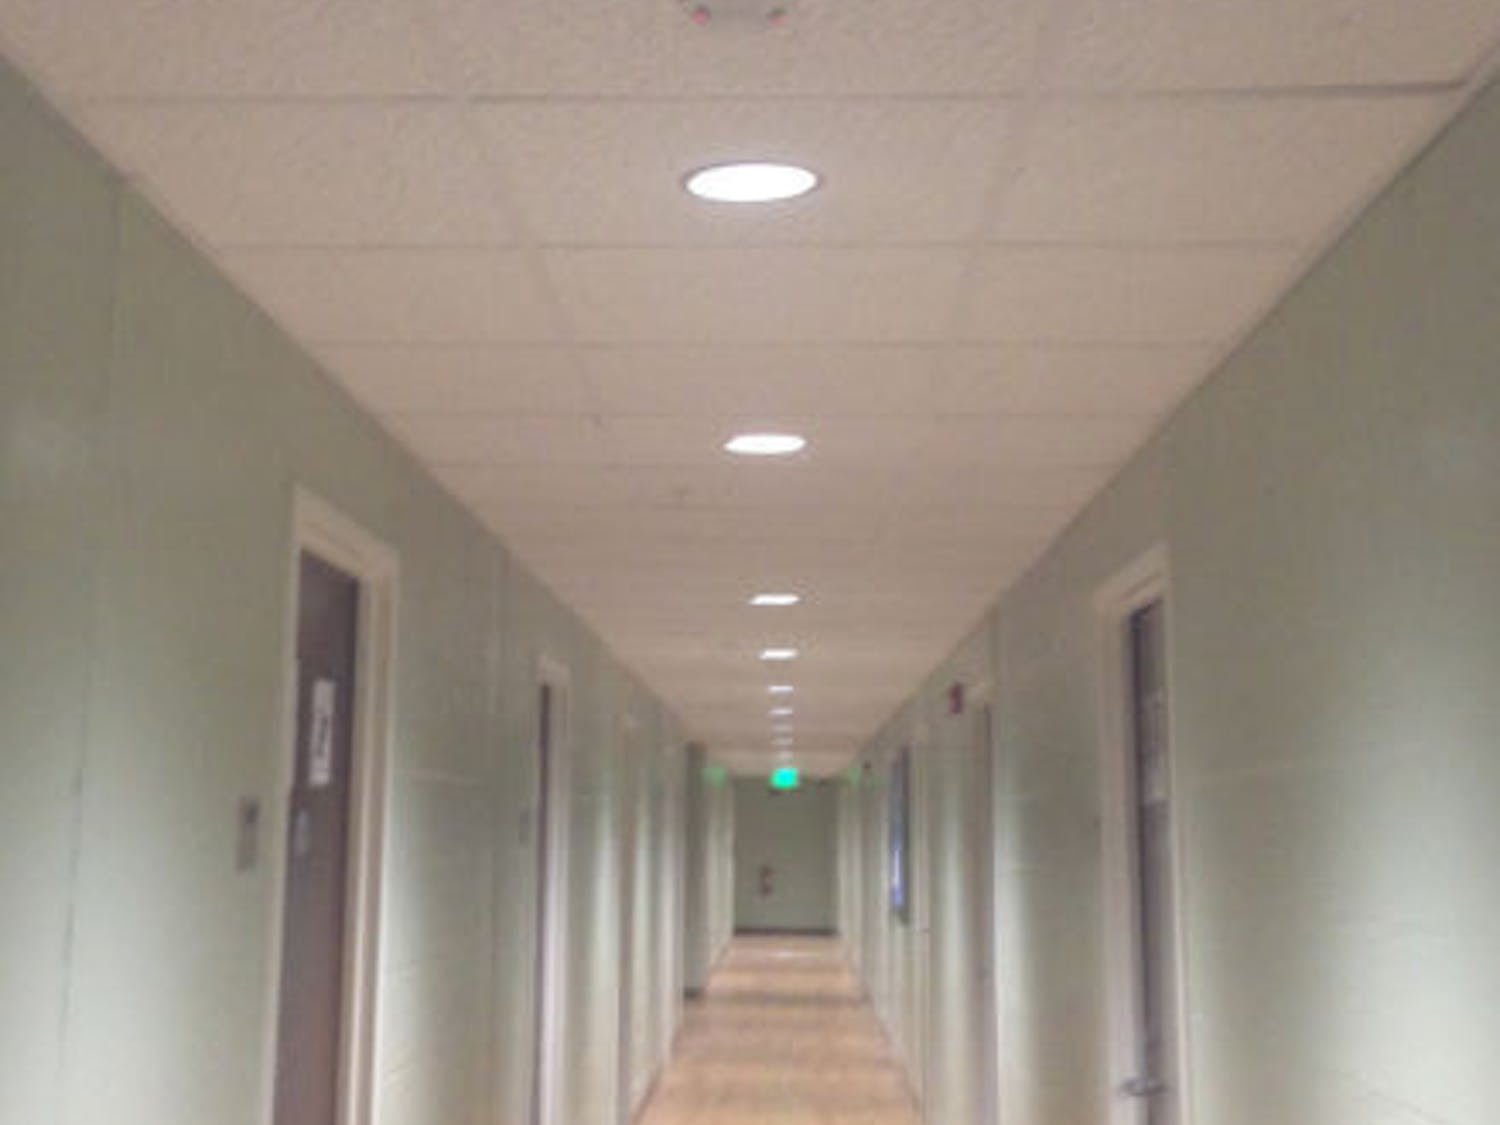 Security cameras are now installed in Broward Hall following the incident in question.